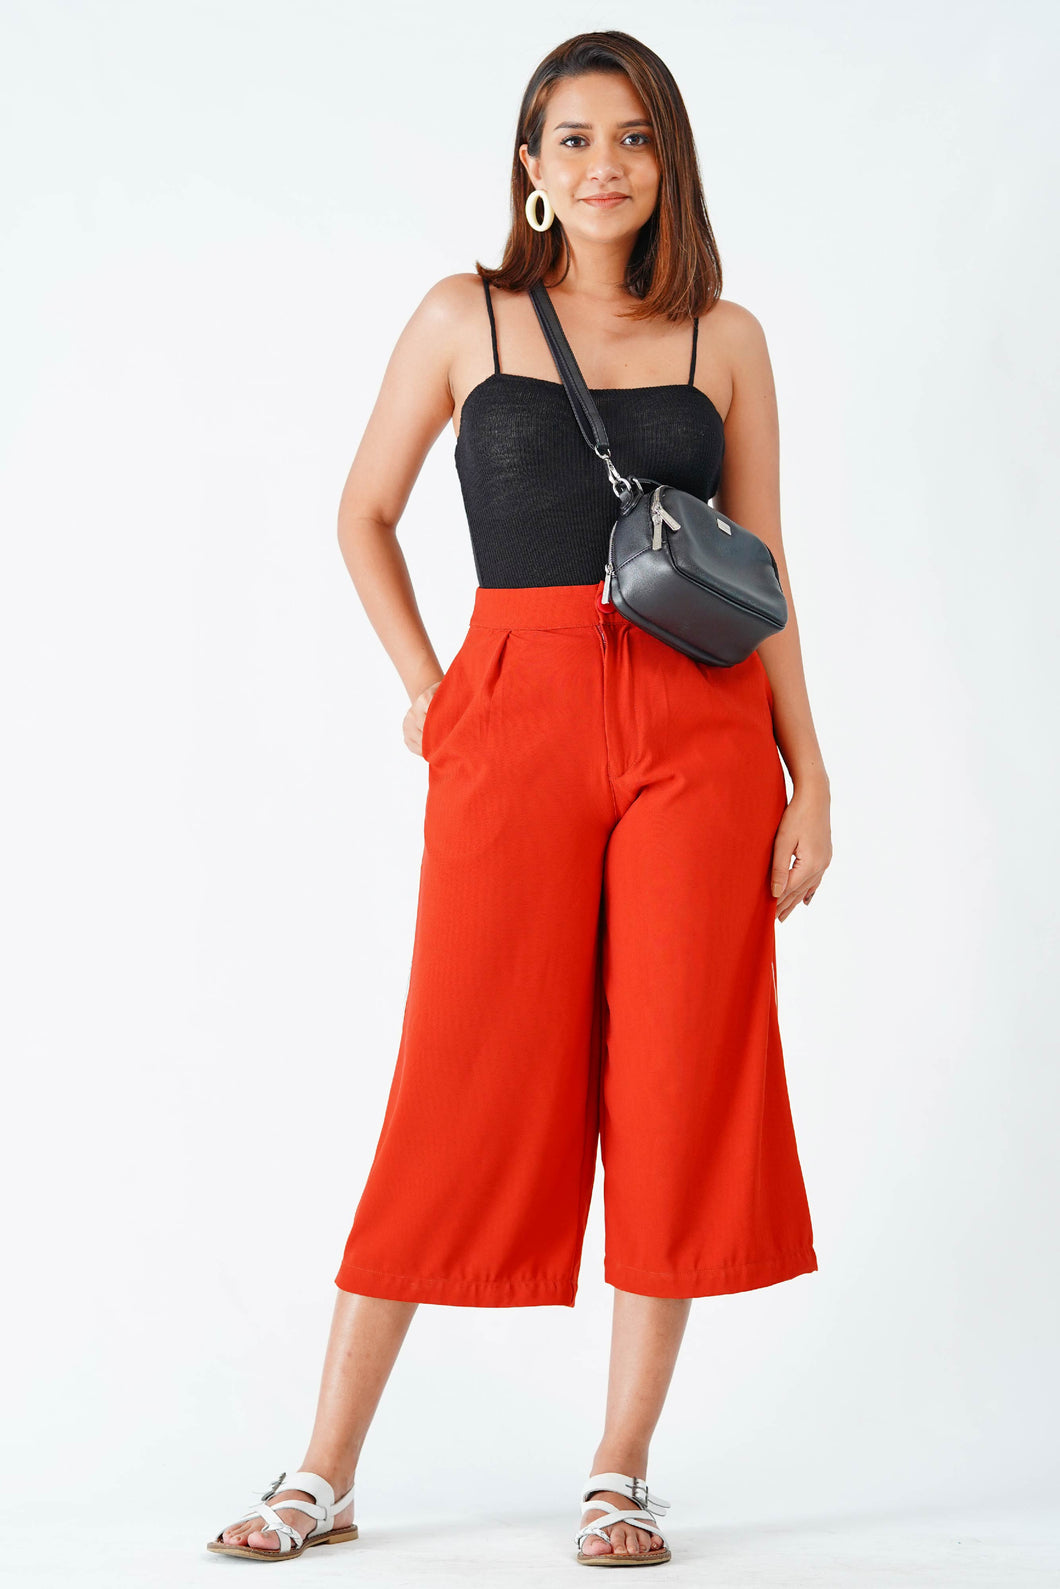 Cherry fruitify crop pant